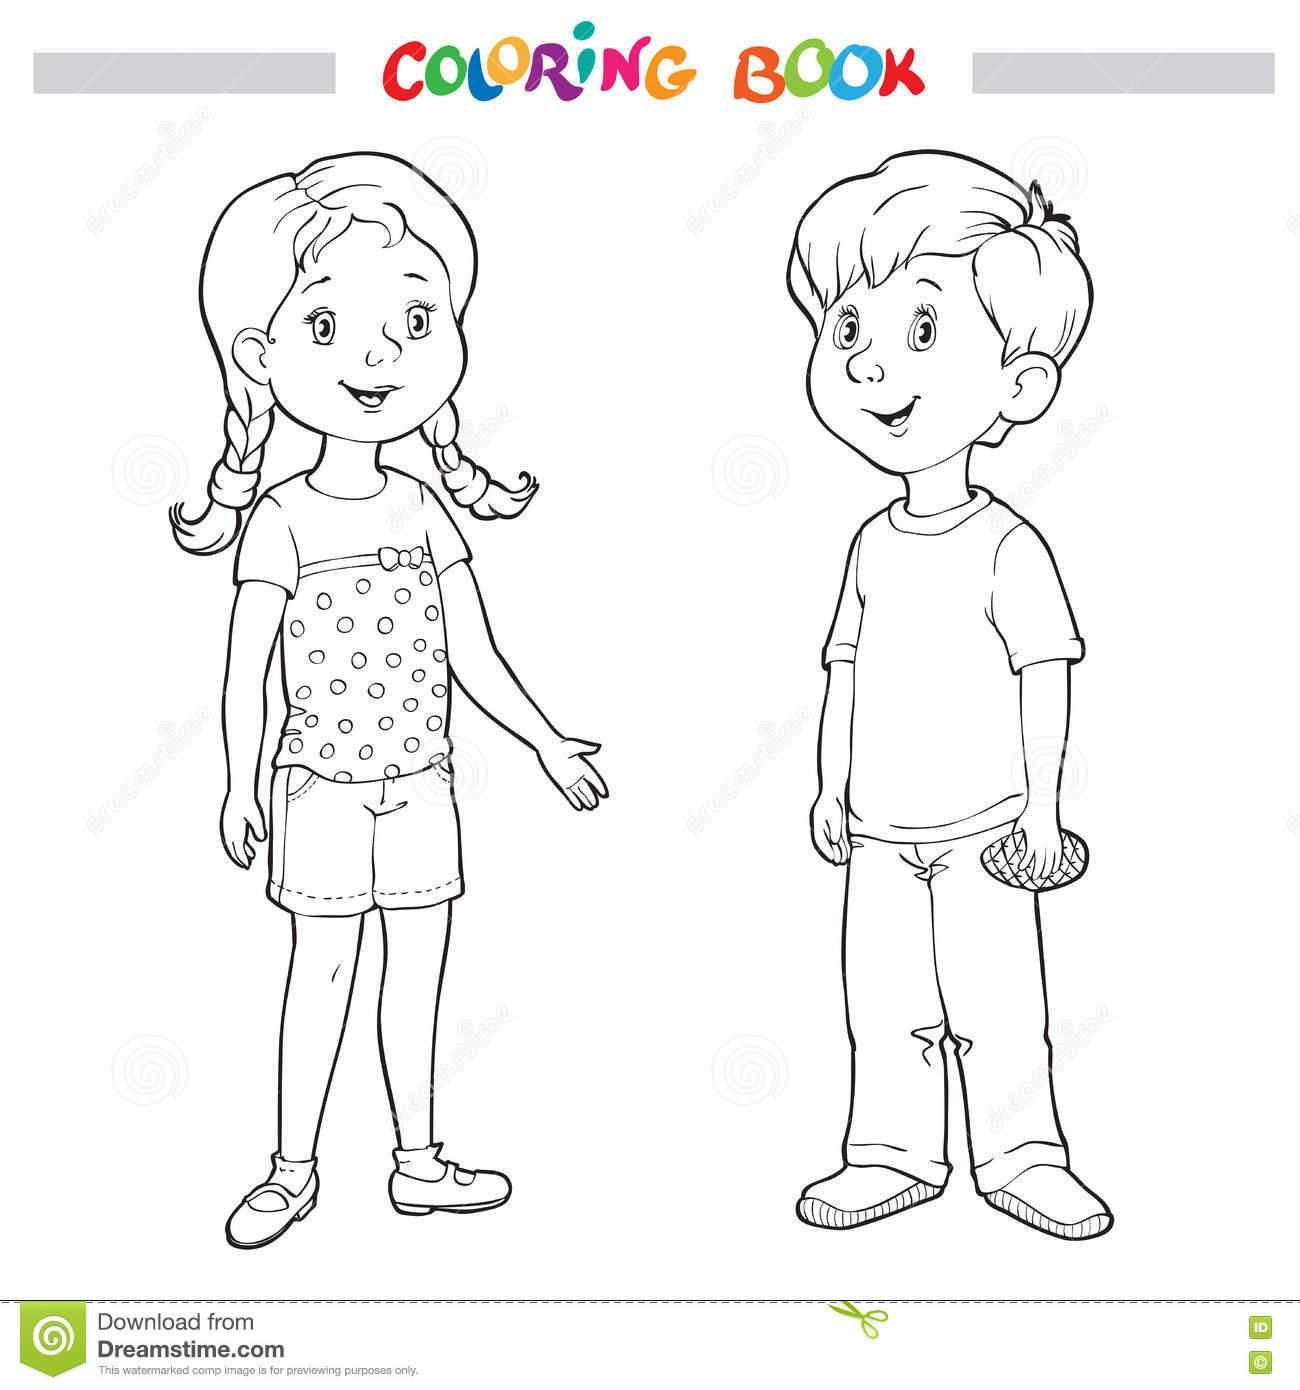 51 Coloring Page Boy And Girl Boy And Girl Drawing Coloring Pages Coloring Pages For Girls